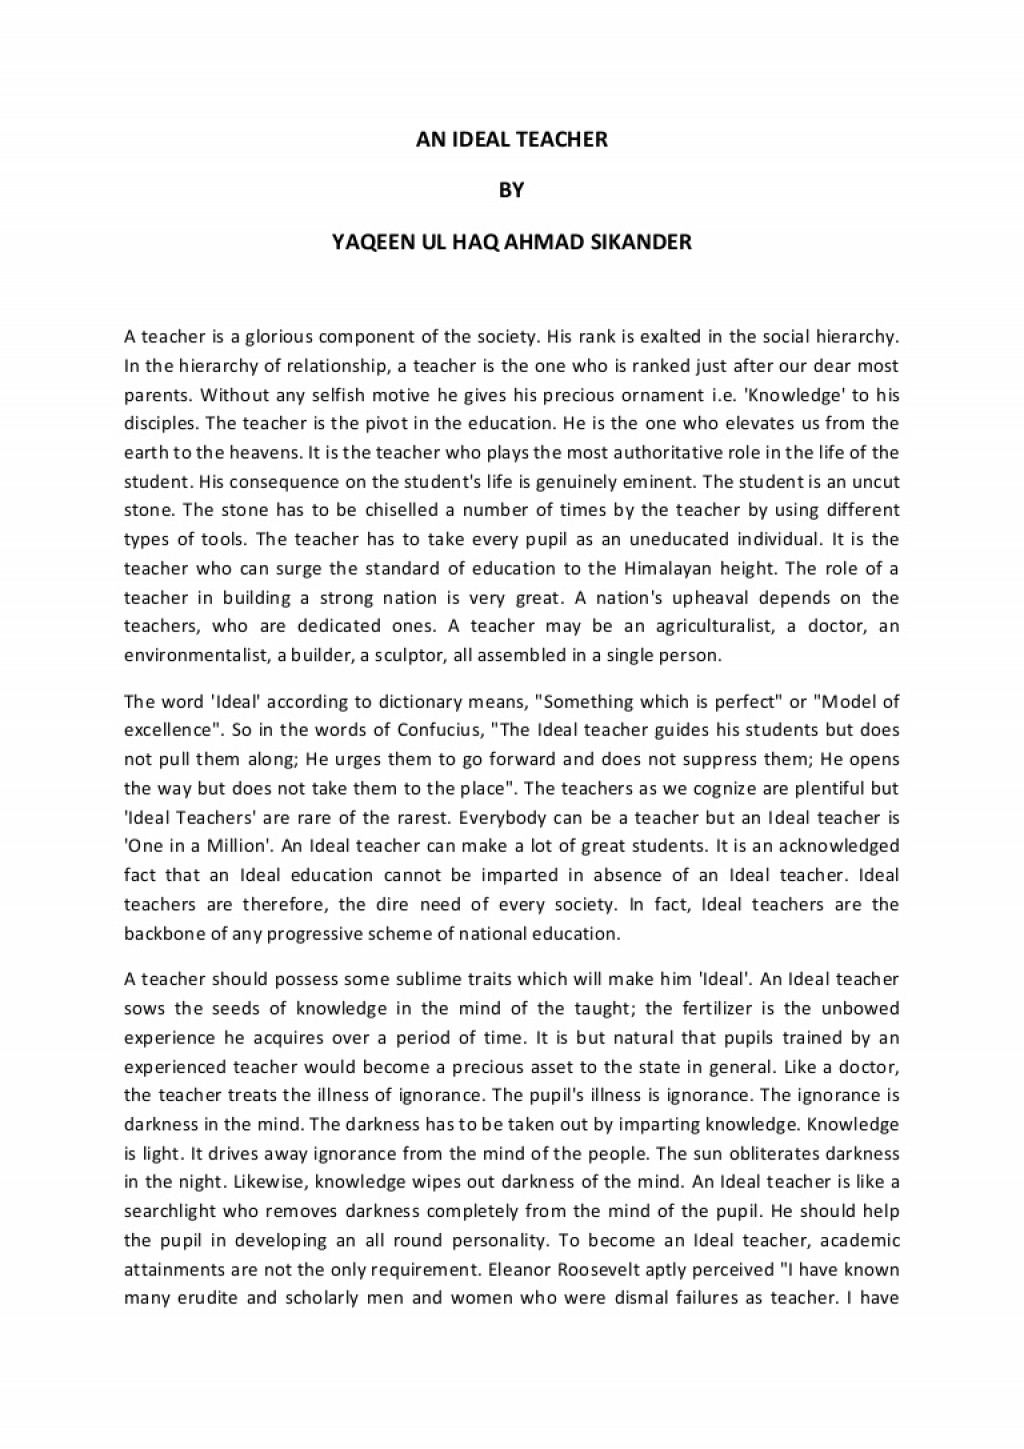 014 Why Do You Want To Teacher Essay Anidealteacher Phpapp02 Thumbnail Impressive Be A Pdf Become An English Home Based Online Large